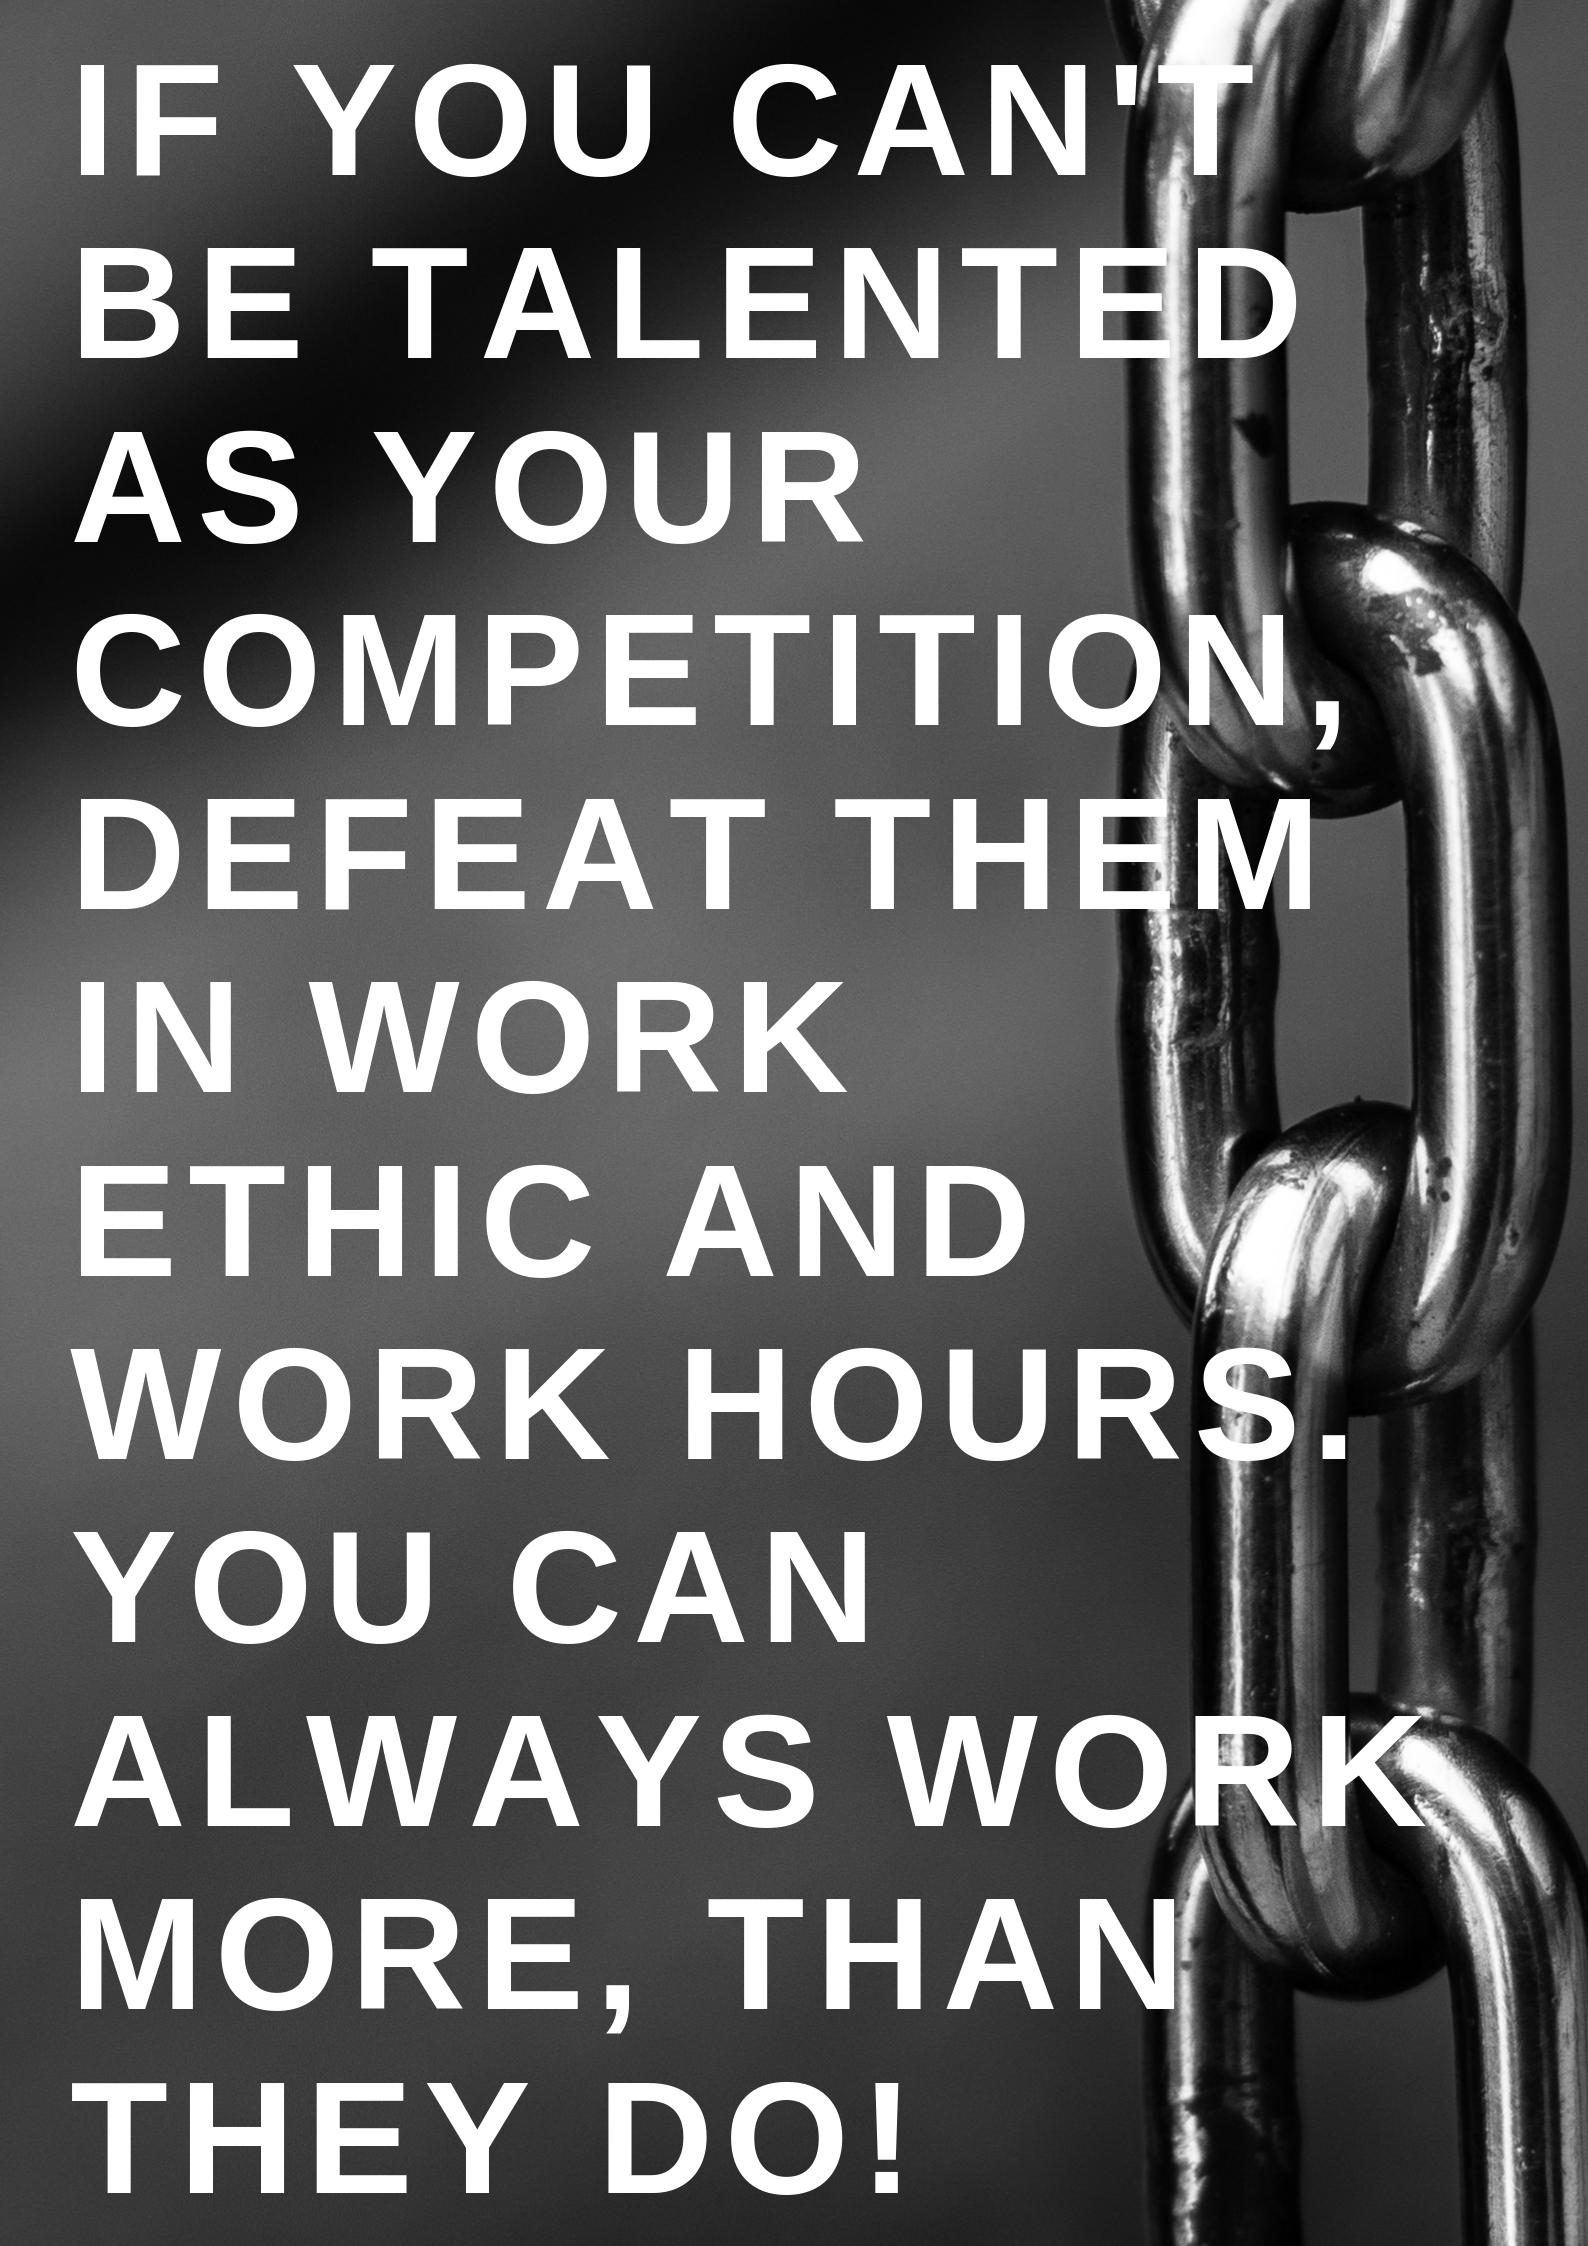 [Image] Hard work beats talent, out grind Everyone.